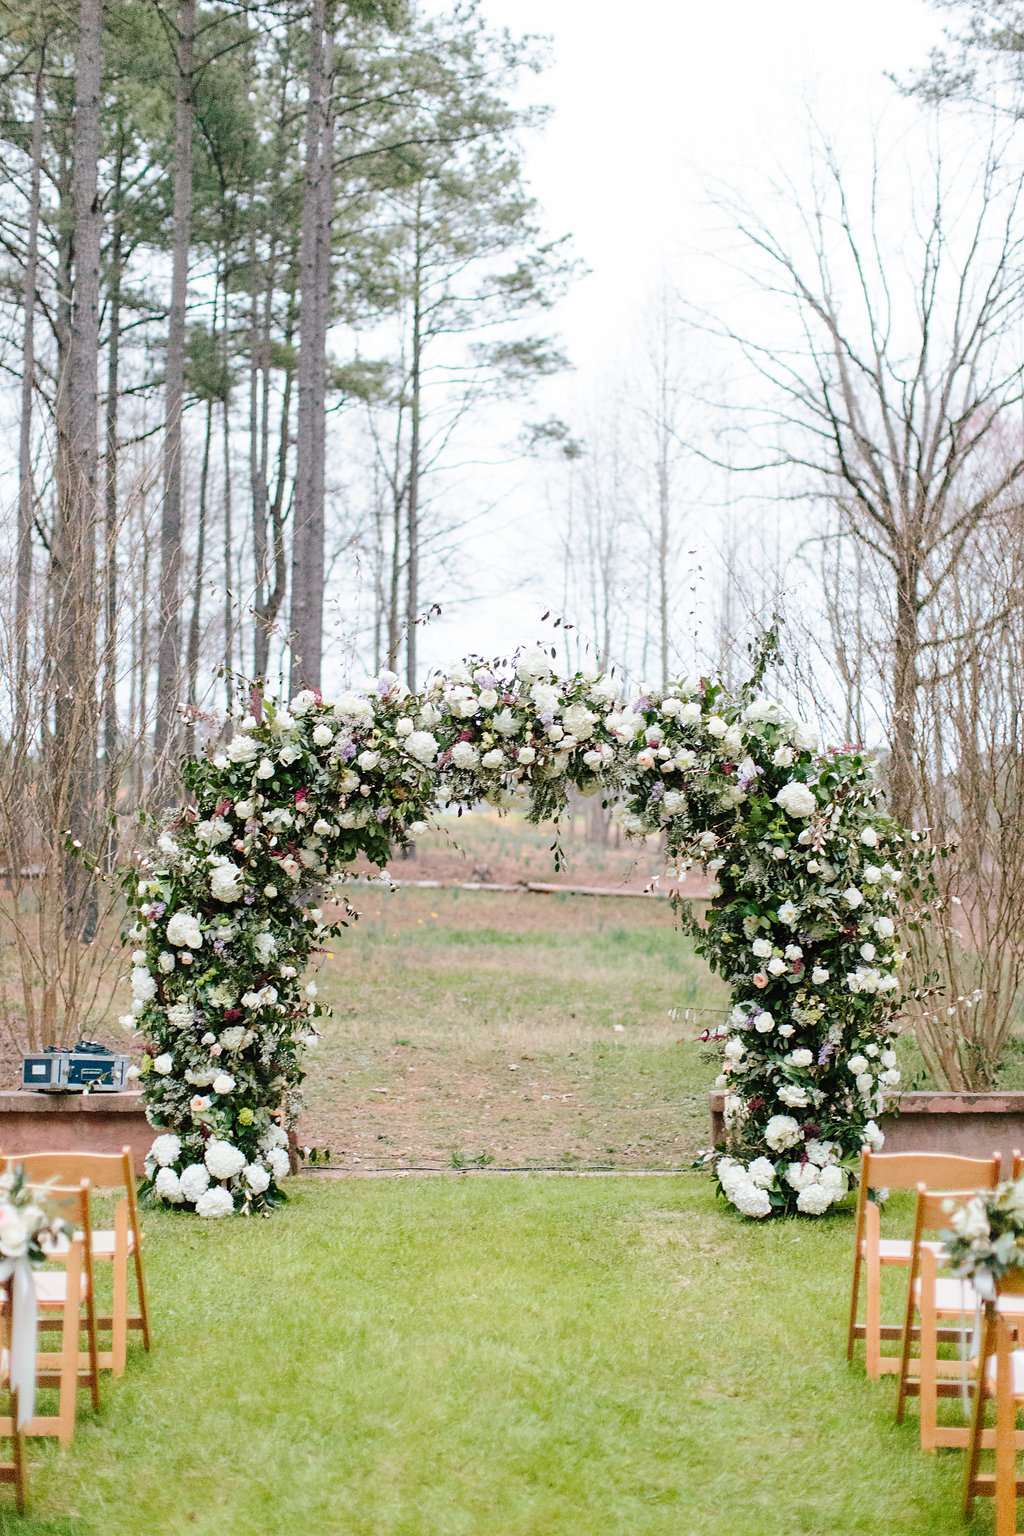 floral-wedding-arch-greg-boulus-events-augusta-georgia.jpg